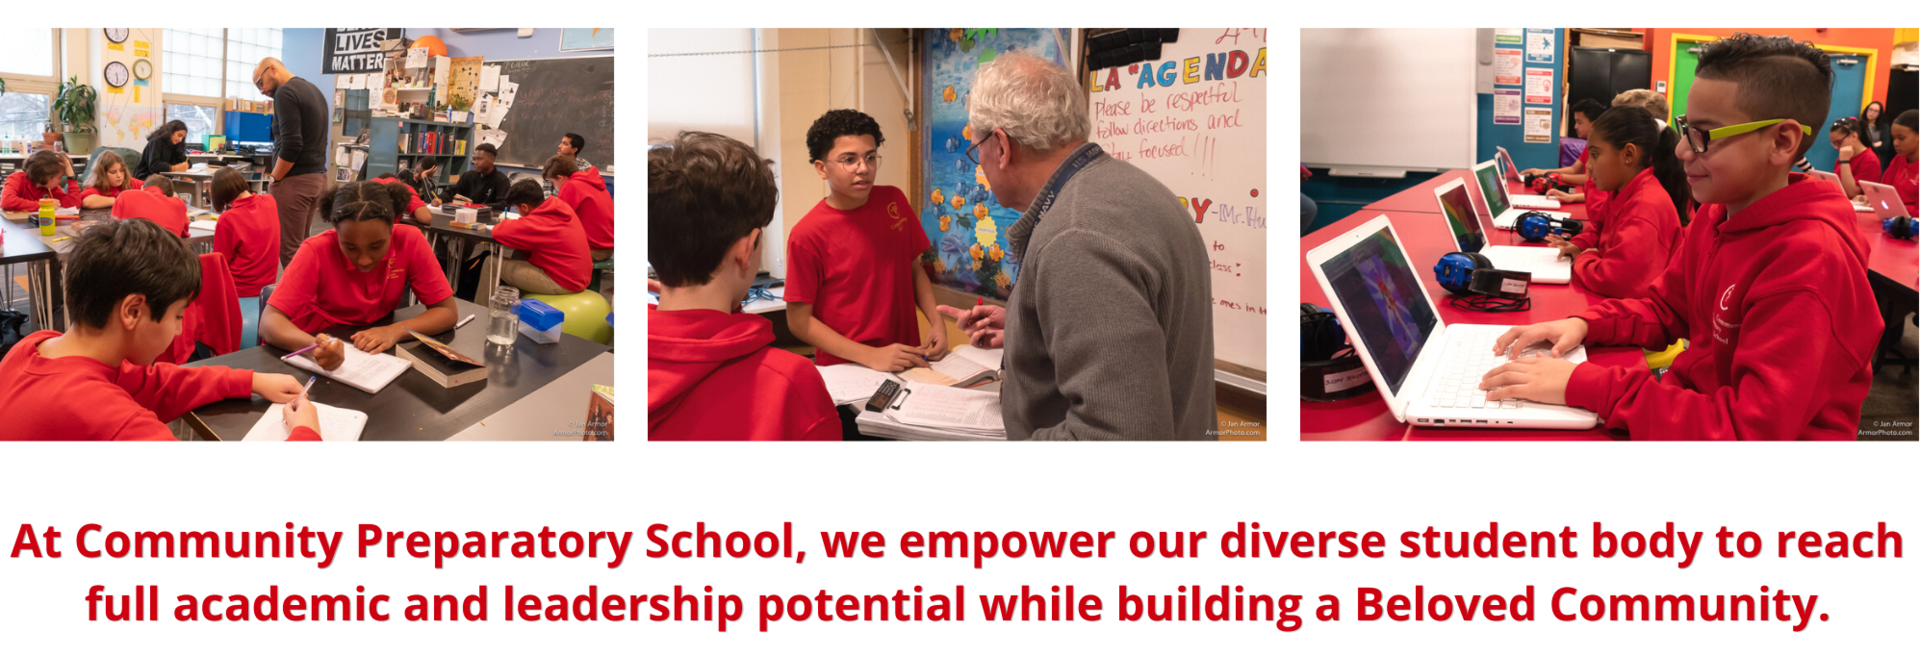 At Community Preparatory School, we empower our diverse student body to reach full academic and leadership potential while building a Beloved Community.